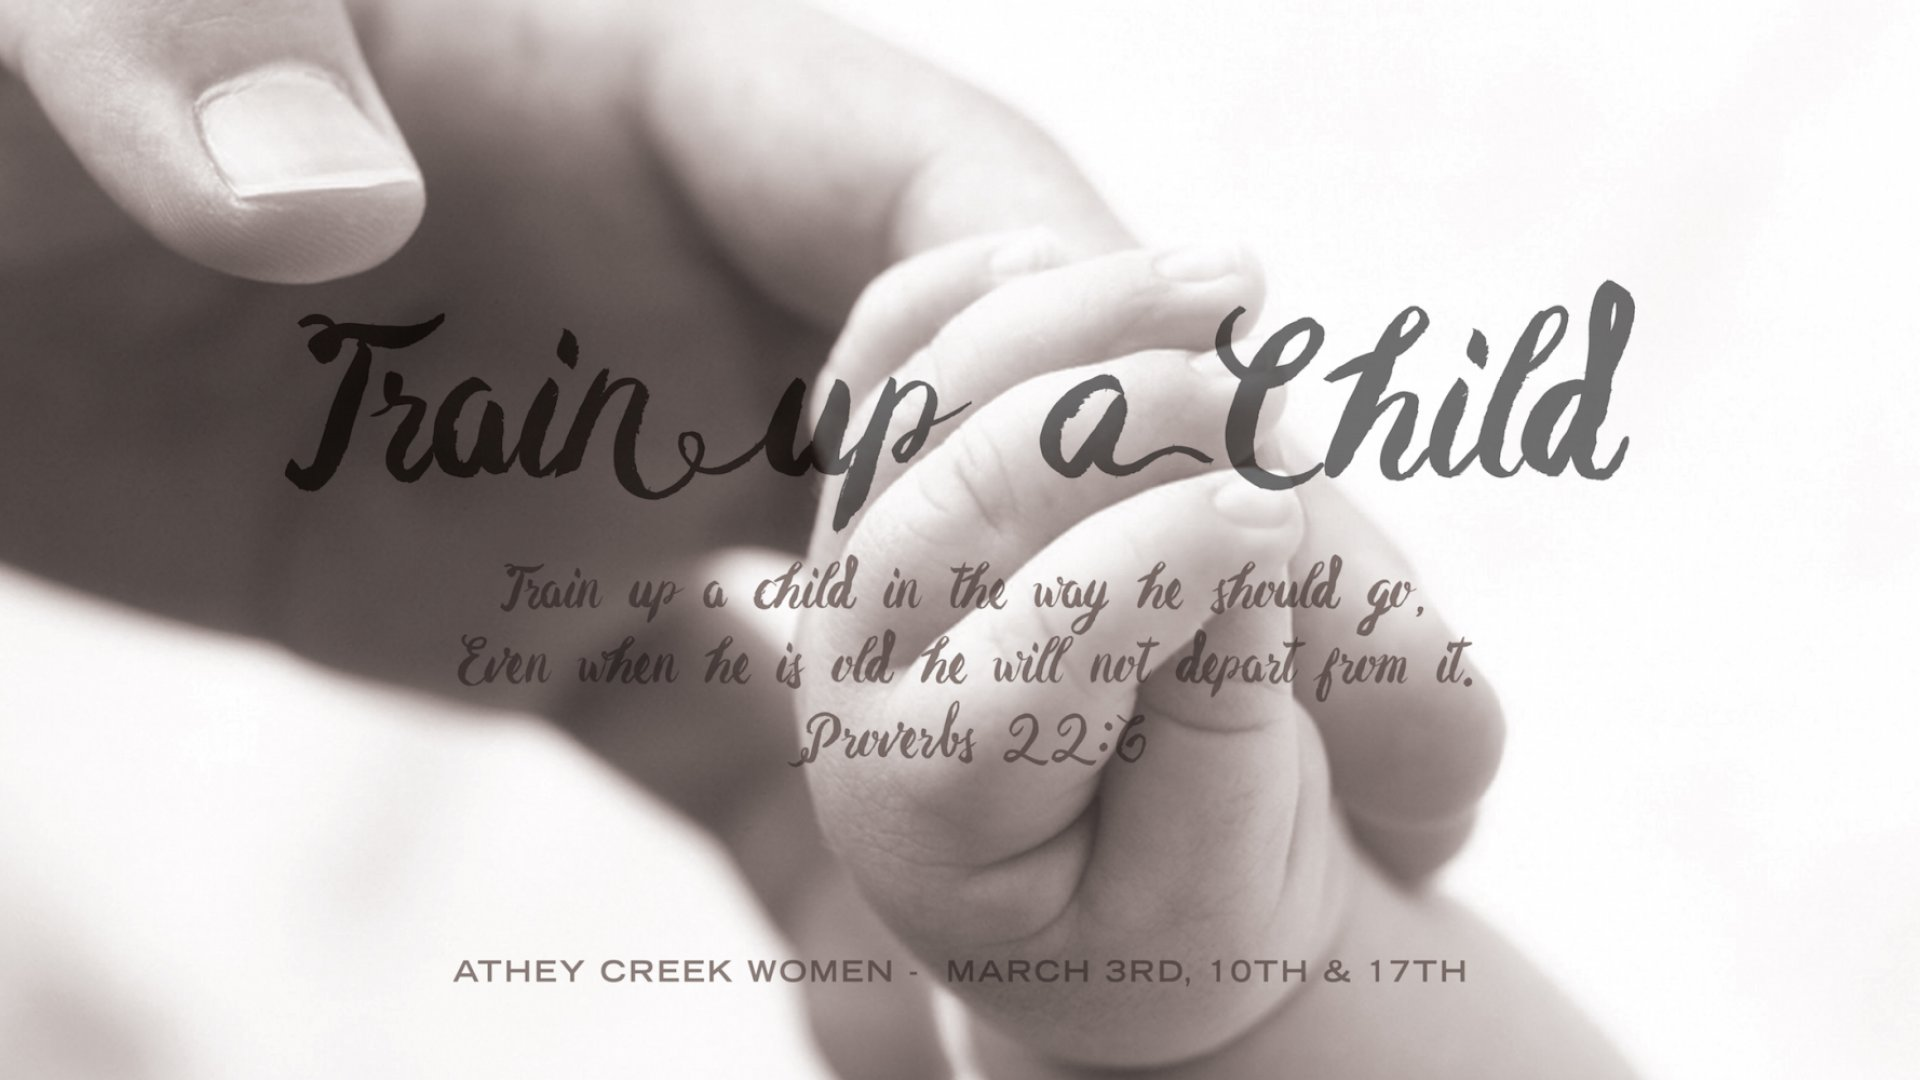 Teaching artwork for Train Up a Child